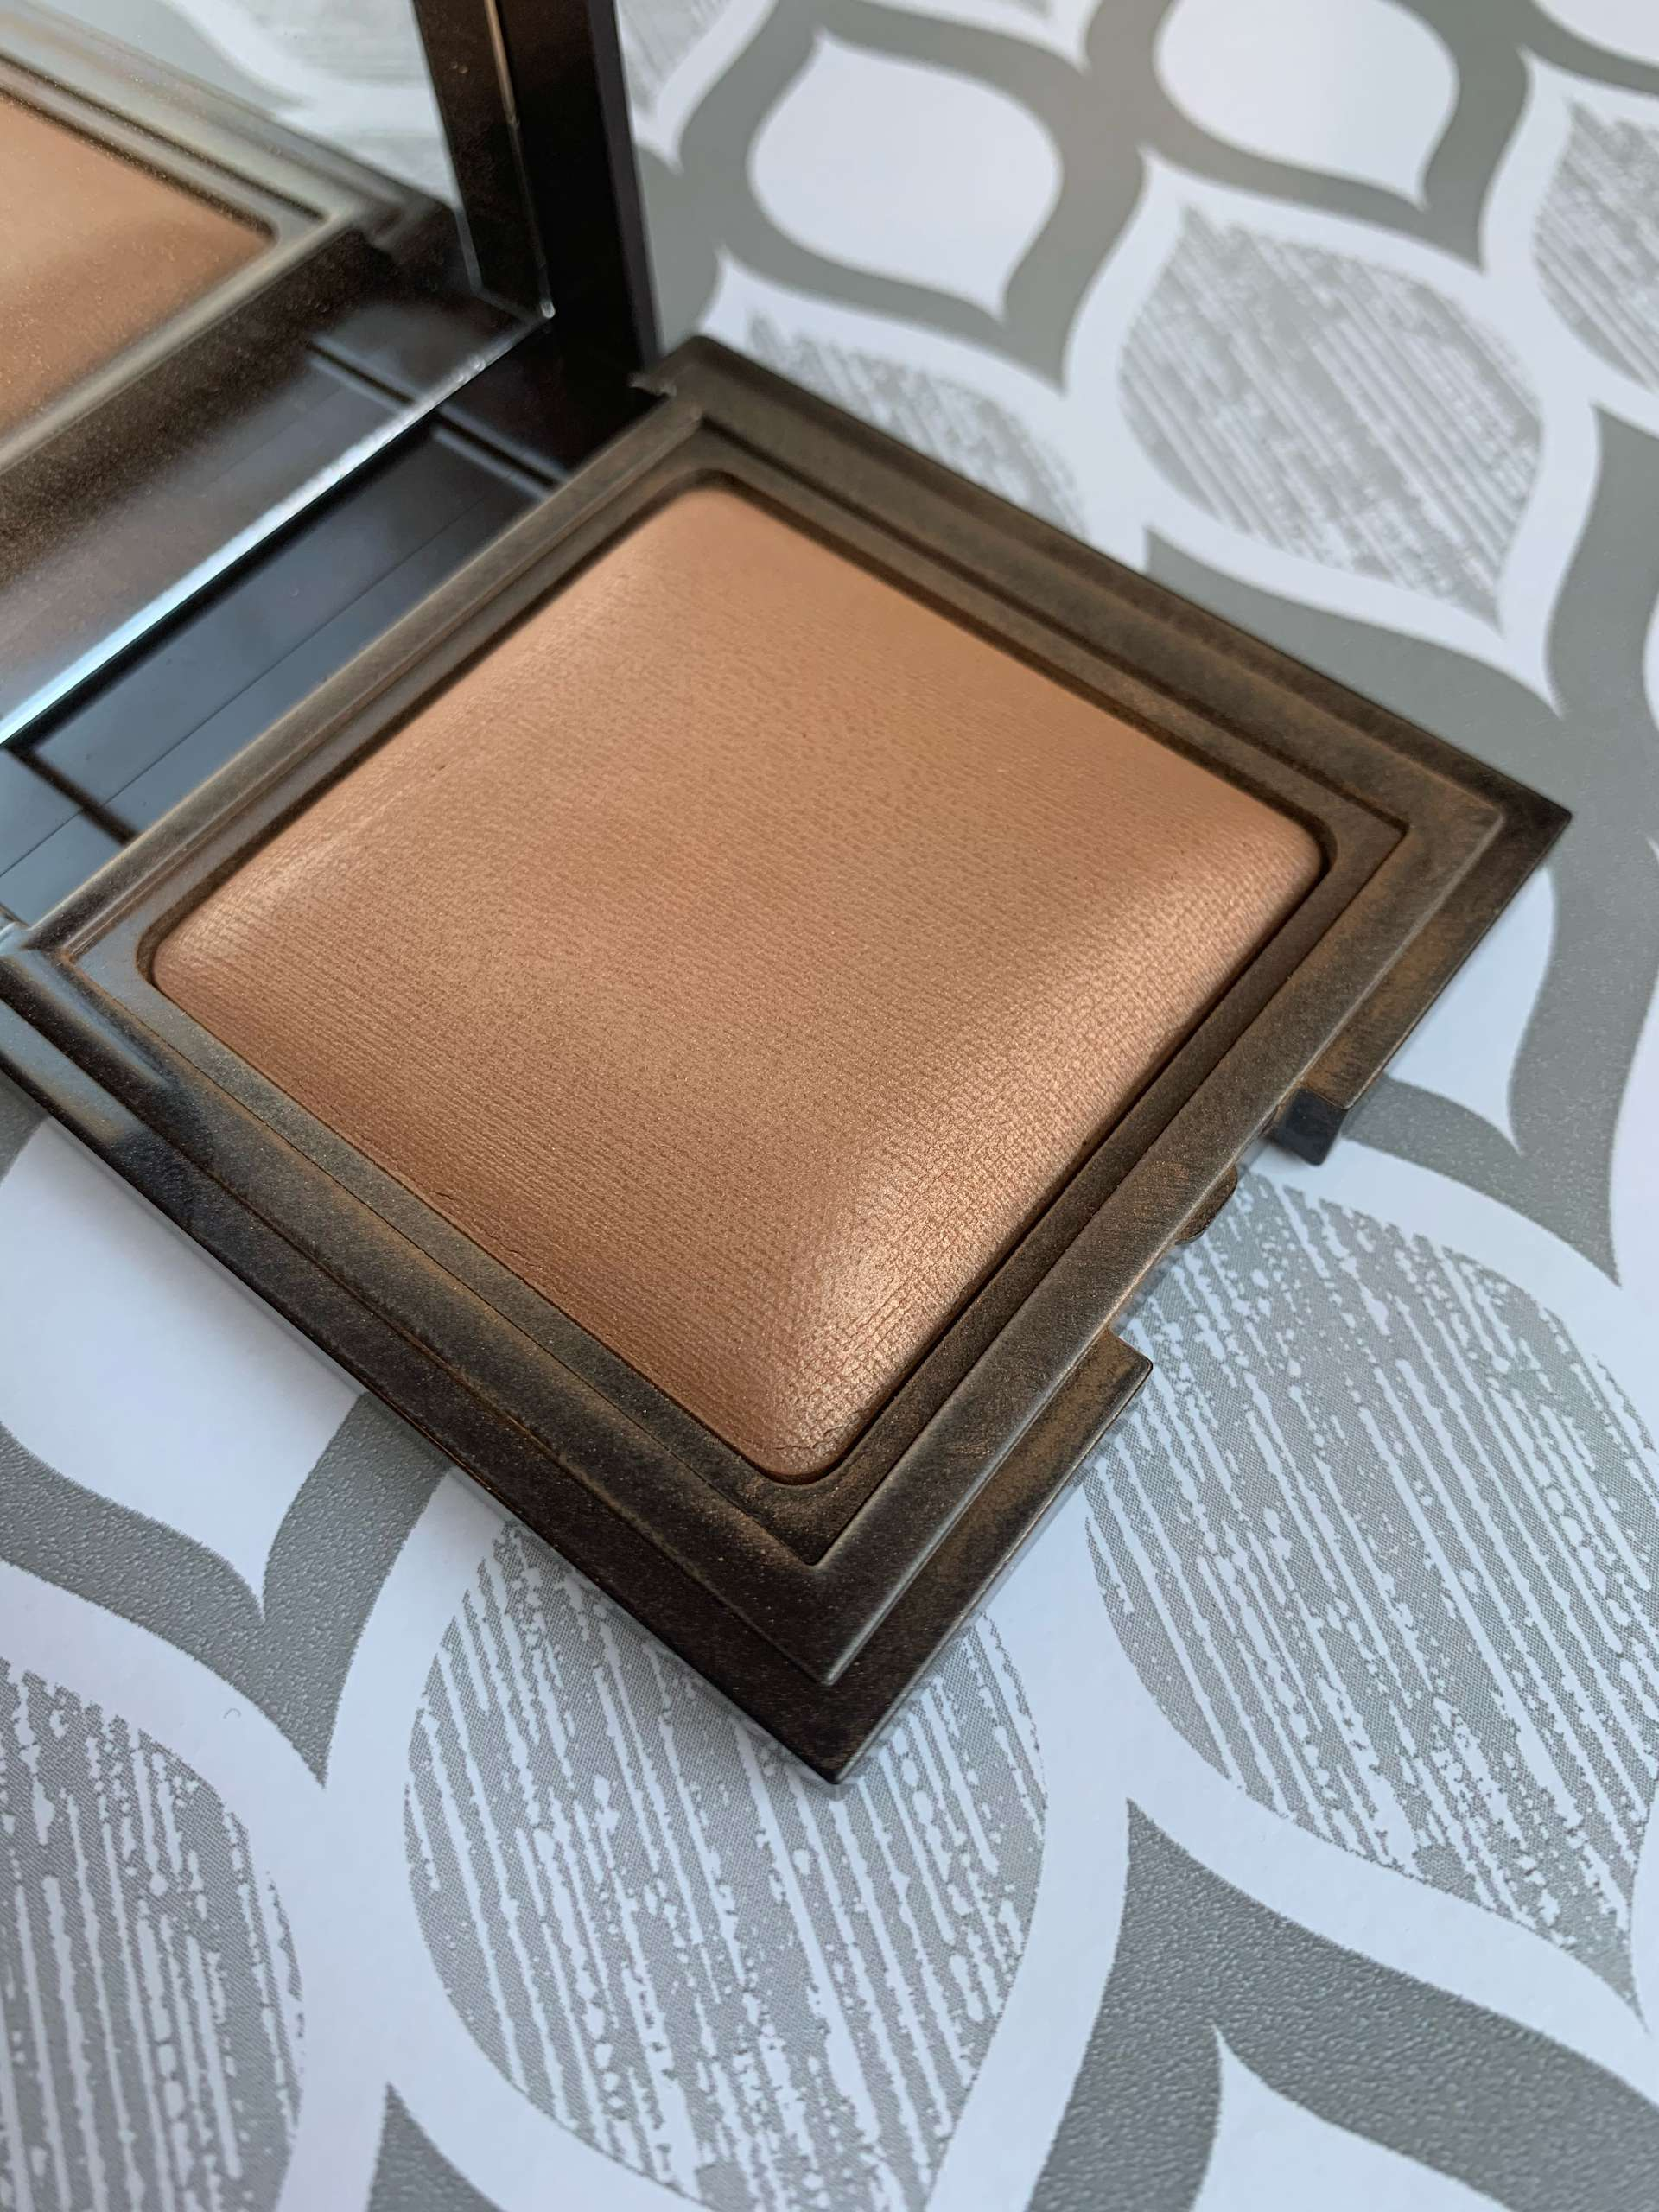 Laura Mercier Candleglow Sheer Perfecting Powder (5) swatch